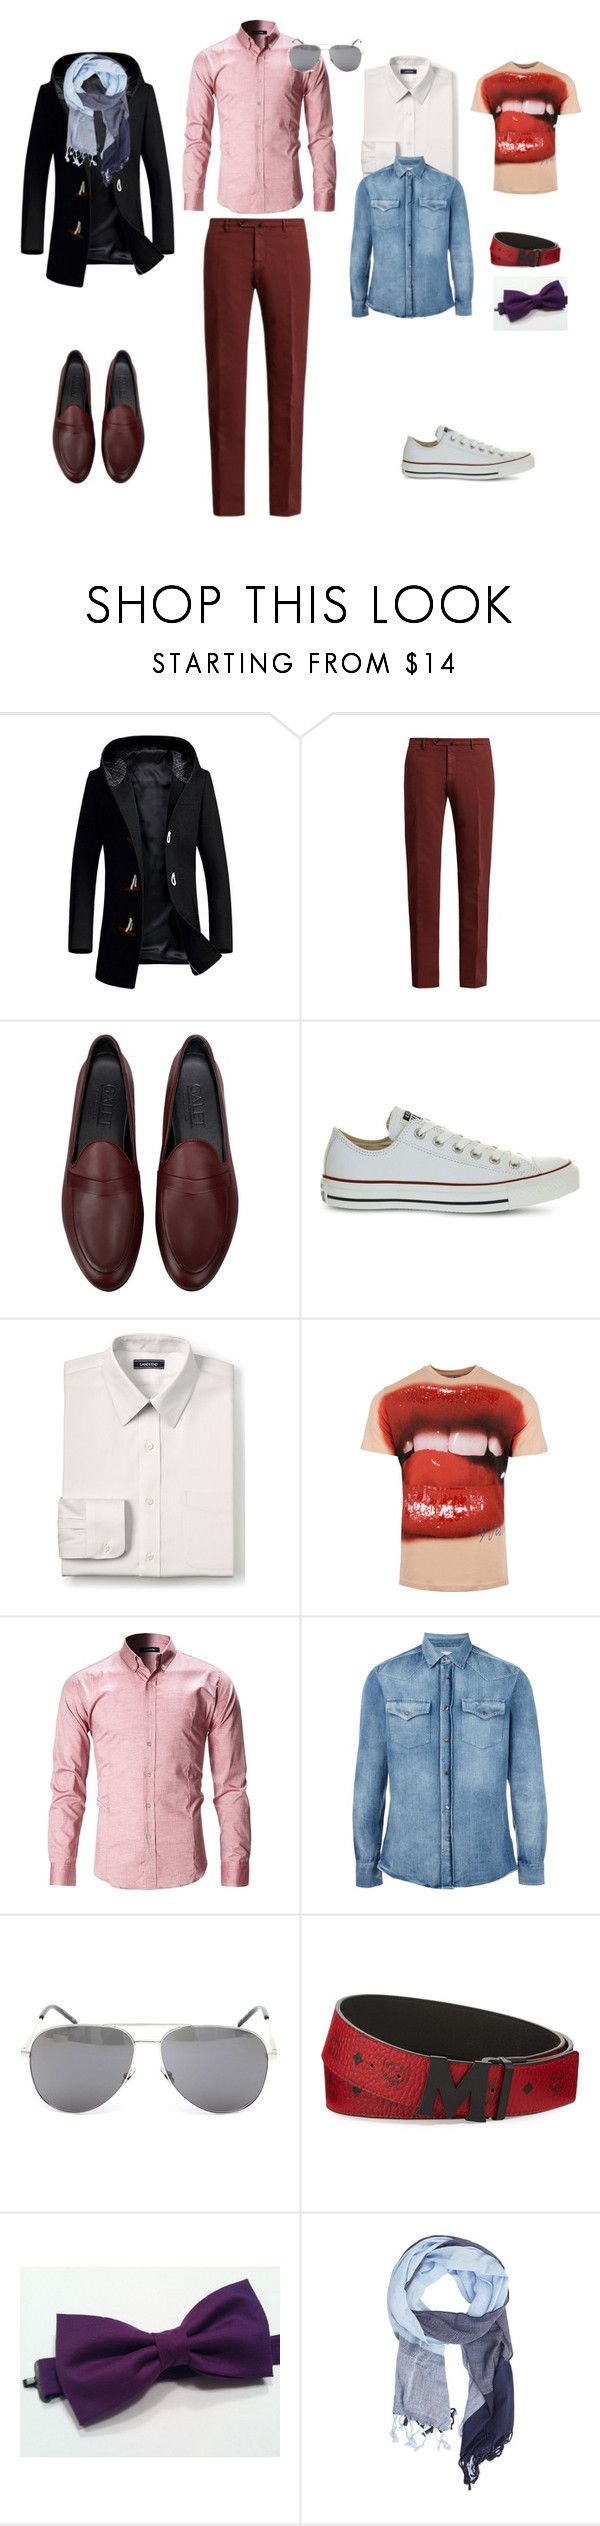 """Мужчины в тренде!"" by yana-ardysheva on Polyvore featuring Incotex, Galet, Converse, Lands' End, Vivienne Westwood Man, Brunello Cucinelli, Yves Saint Laurent, MCM, MANGO MAN и men's fashion"